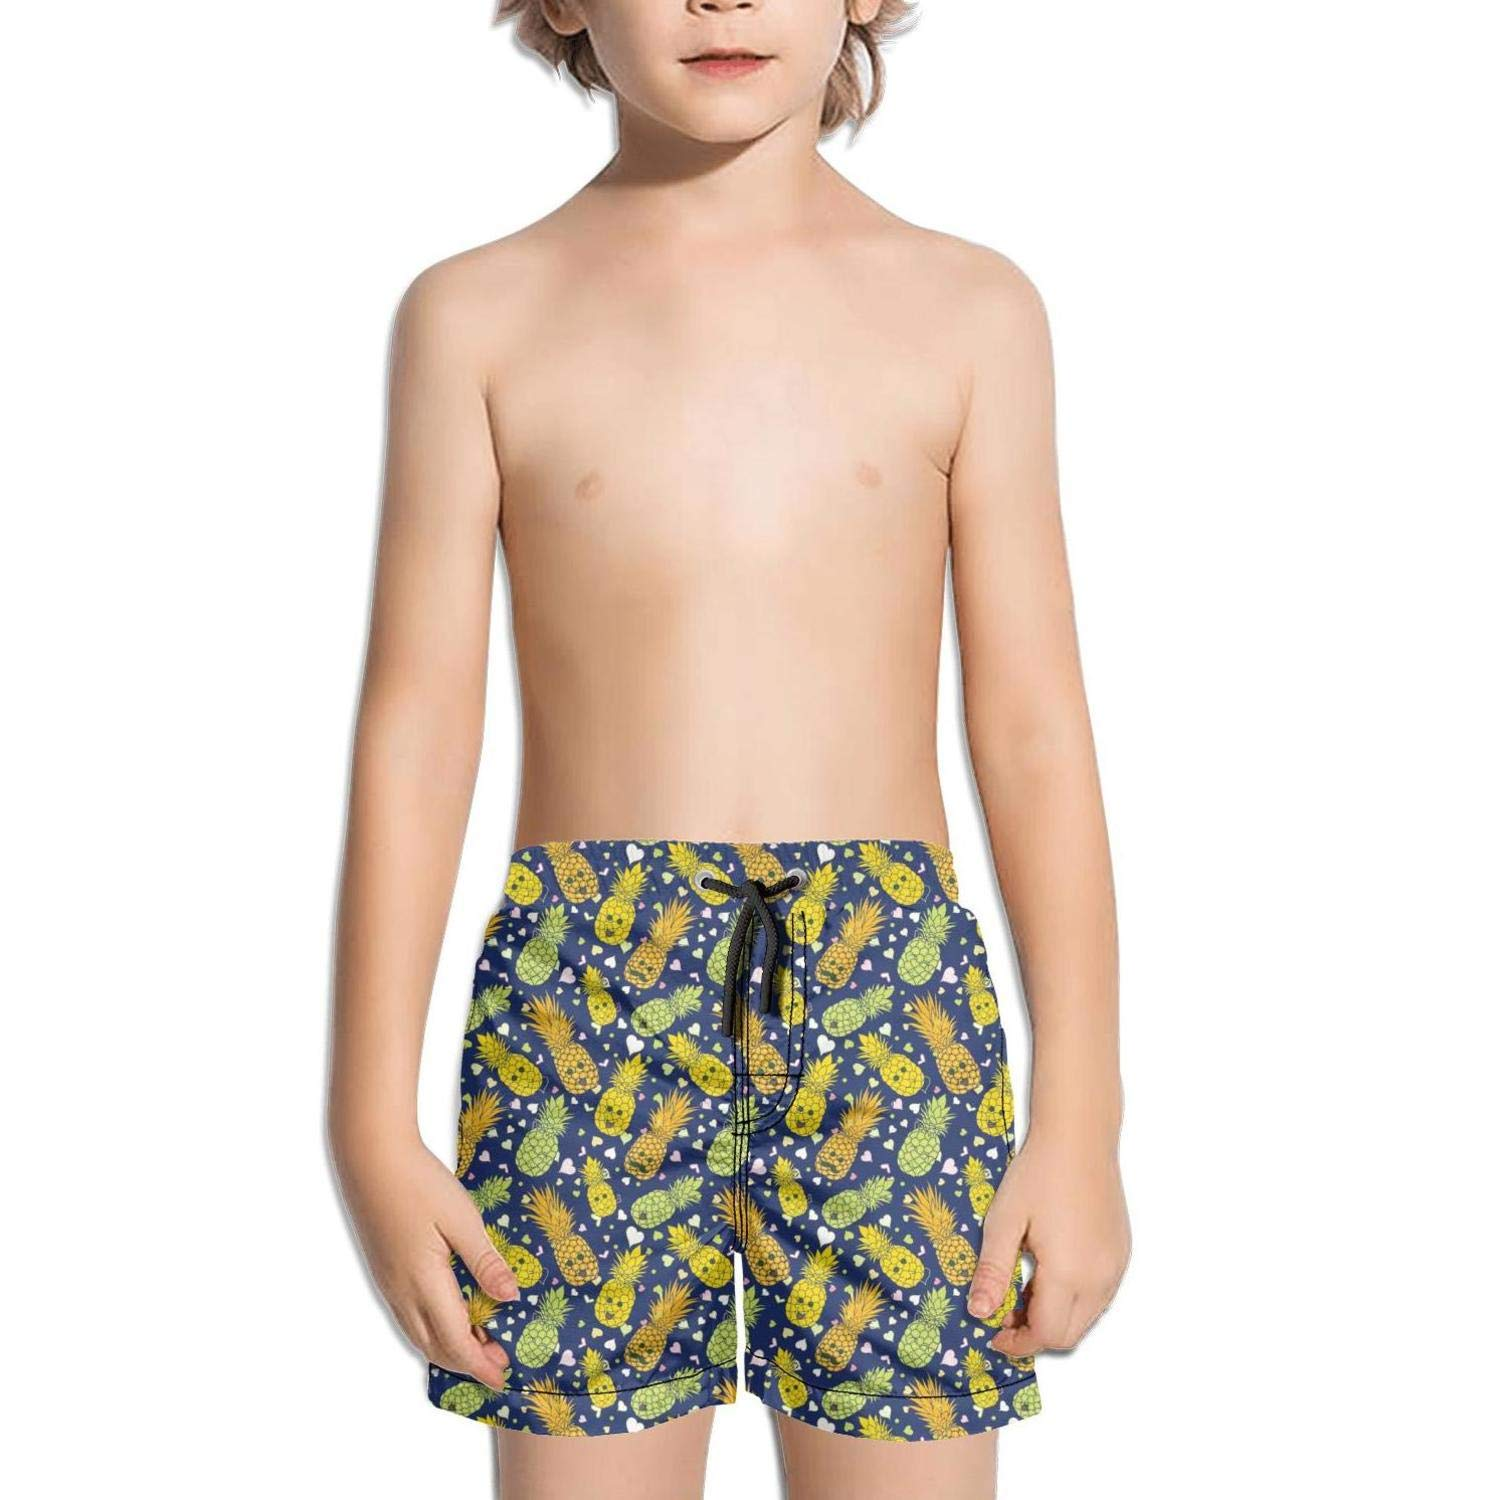 Ina Fers.Quick Dry Swim Trunks Love Happy Pineapple Faces & Heart Shape Shorts for Boys